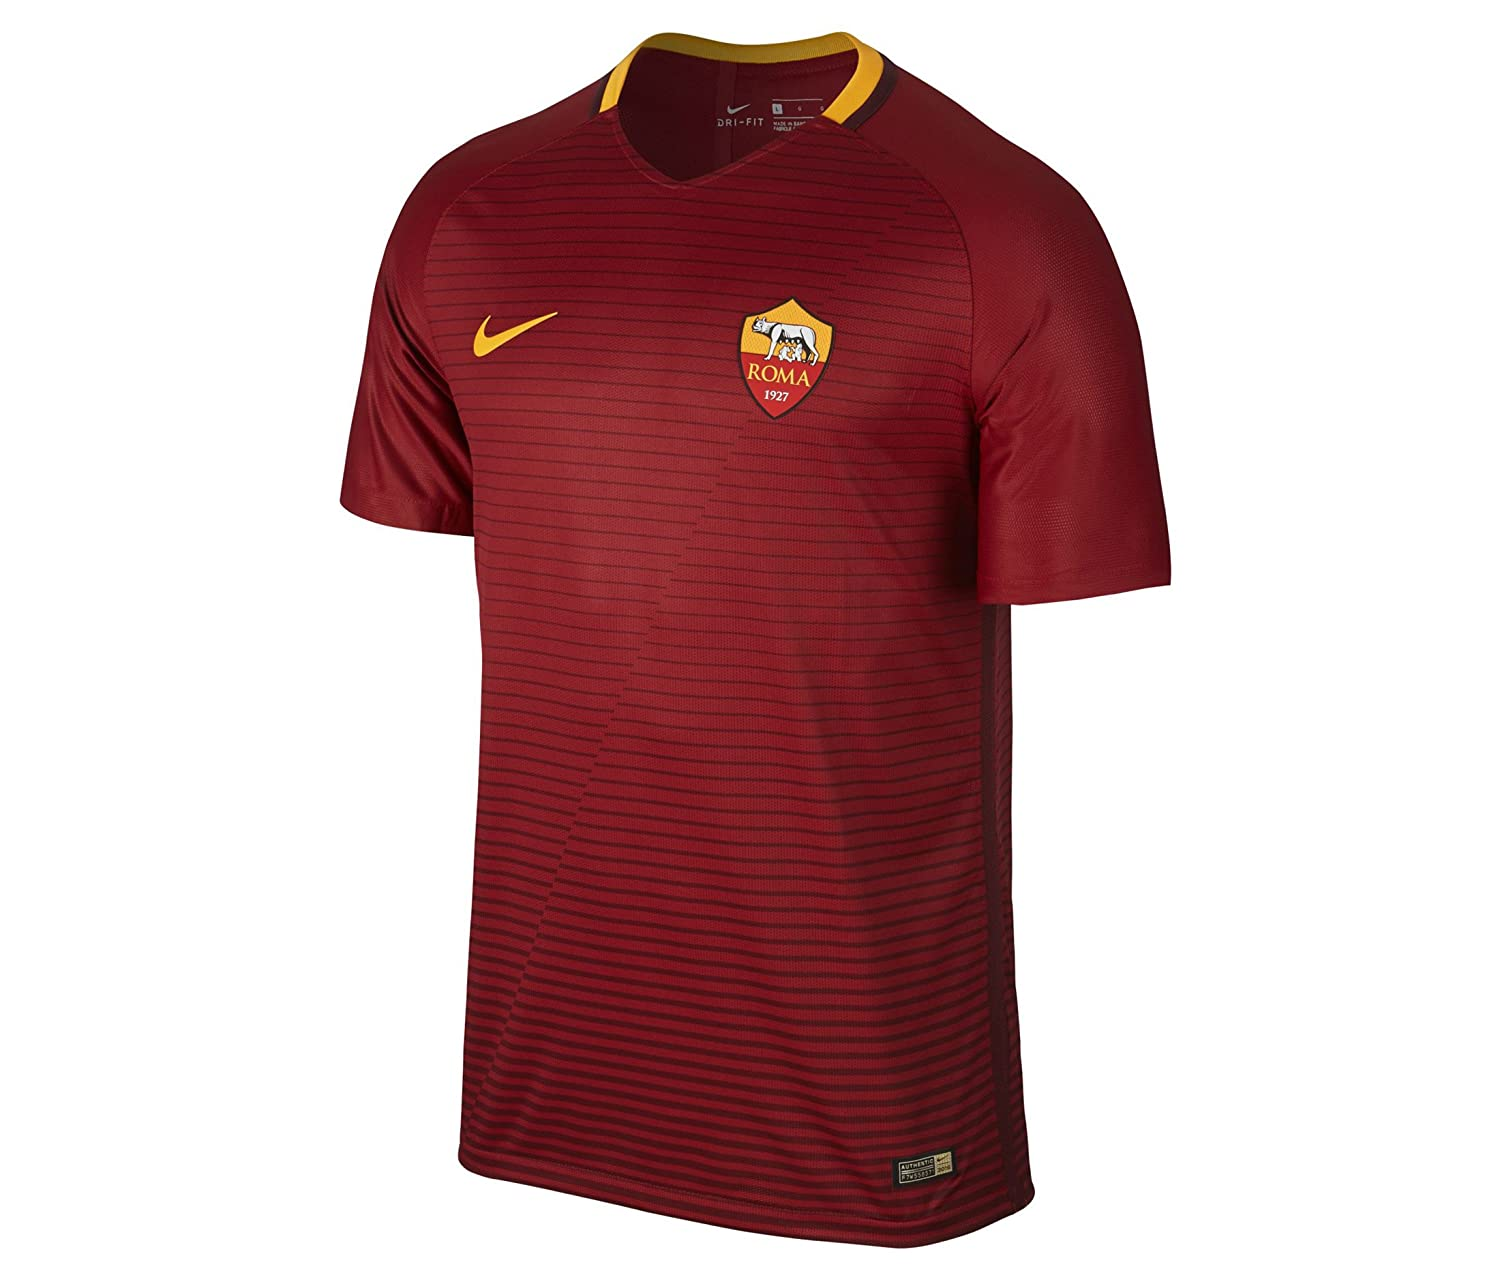 Nike 2016-2017 AS Roma Vapor Home Match Football Soccer T-Shirt Trikot